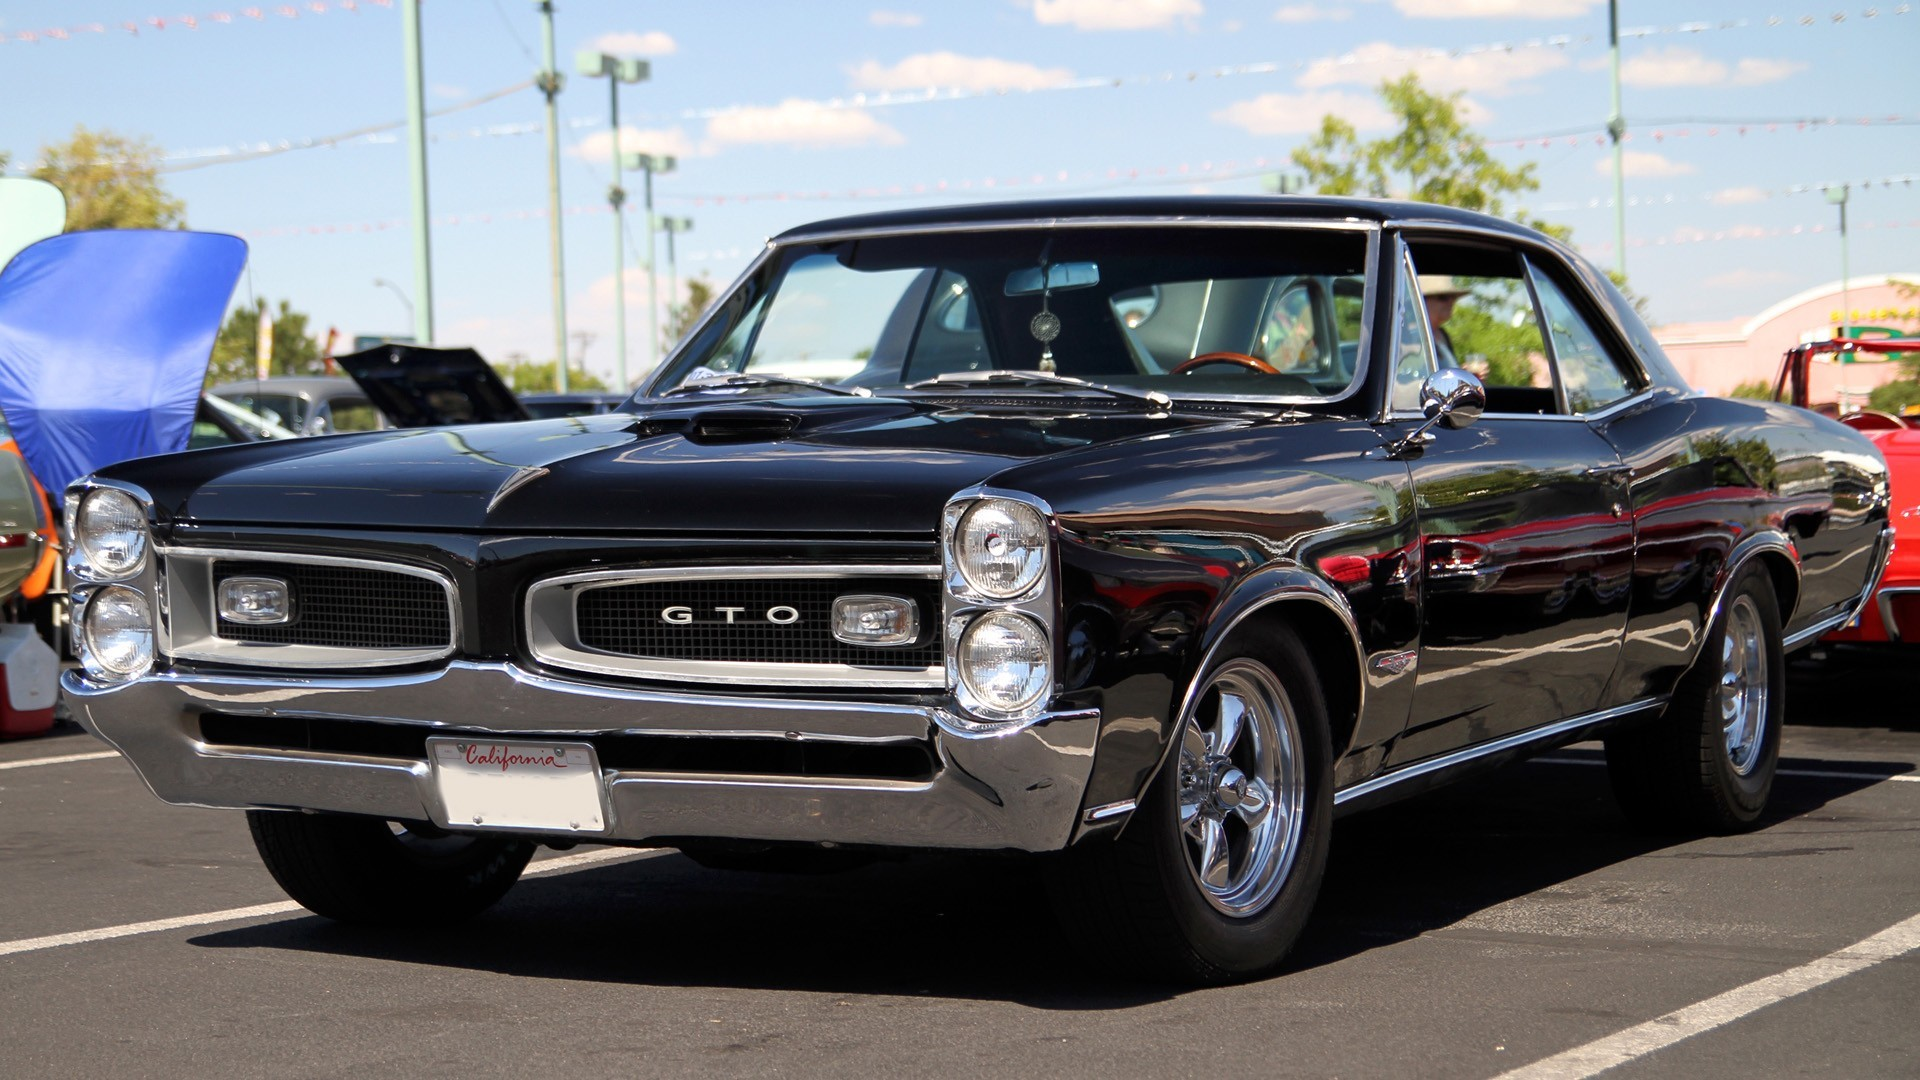 Cars Pontiac Gto Widescreen Wallpaper 4950 also Watch further Oldsmobile 20Cutlass 20Supreme in addition GTZ0010 in addition 69 2p2 Convertible Canadian. on pontiac bonneville muscle car